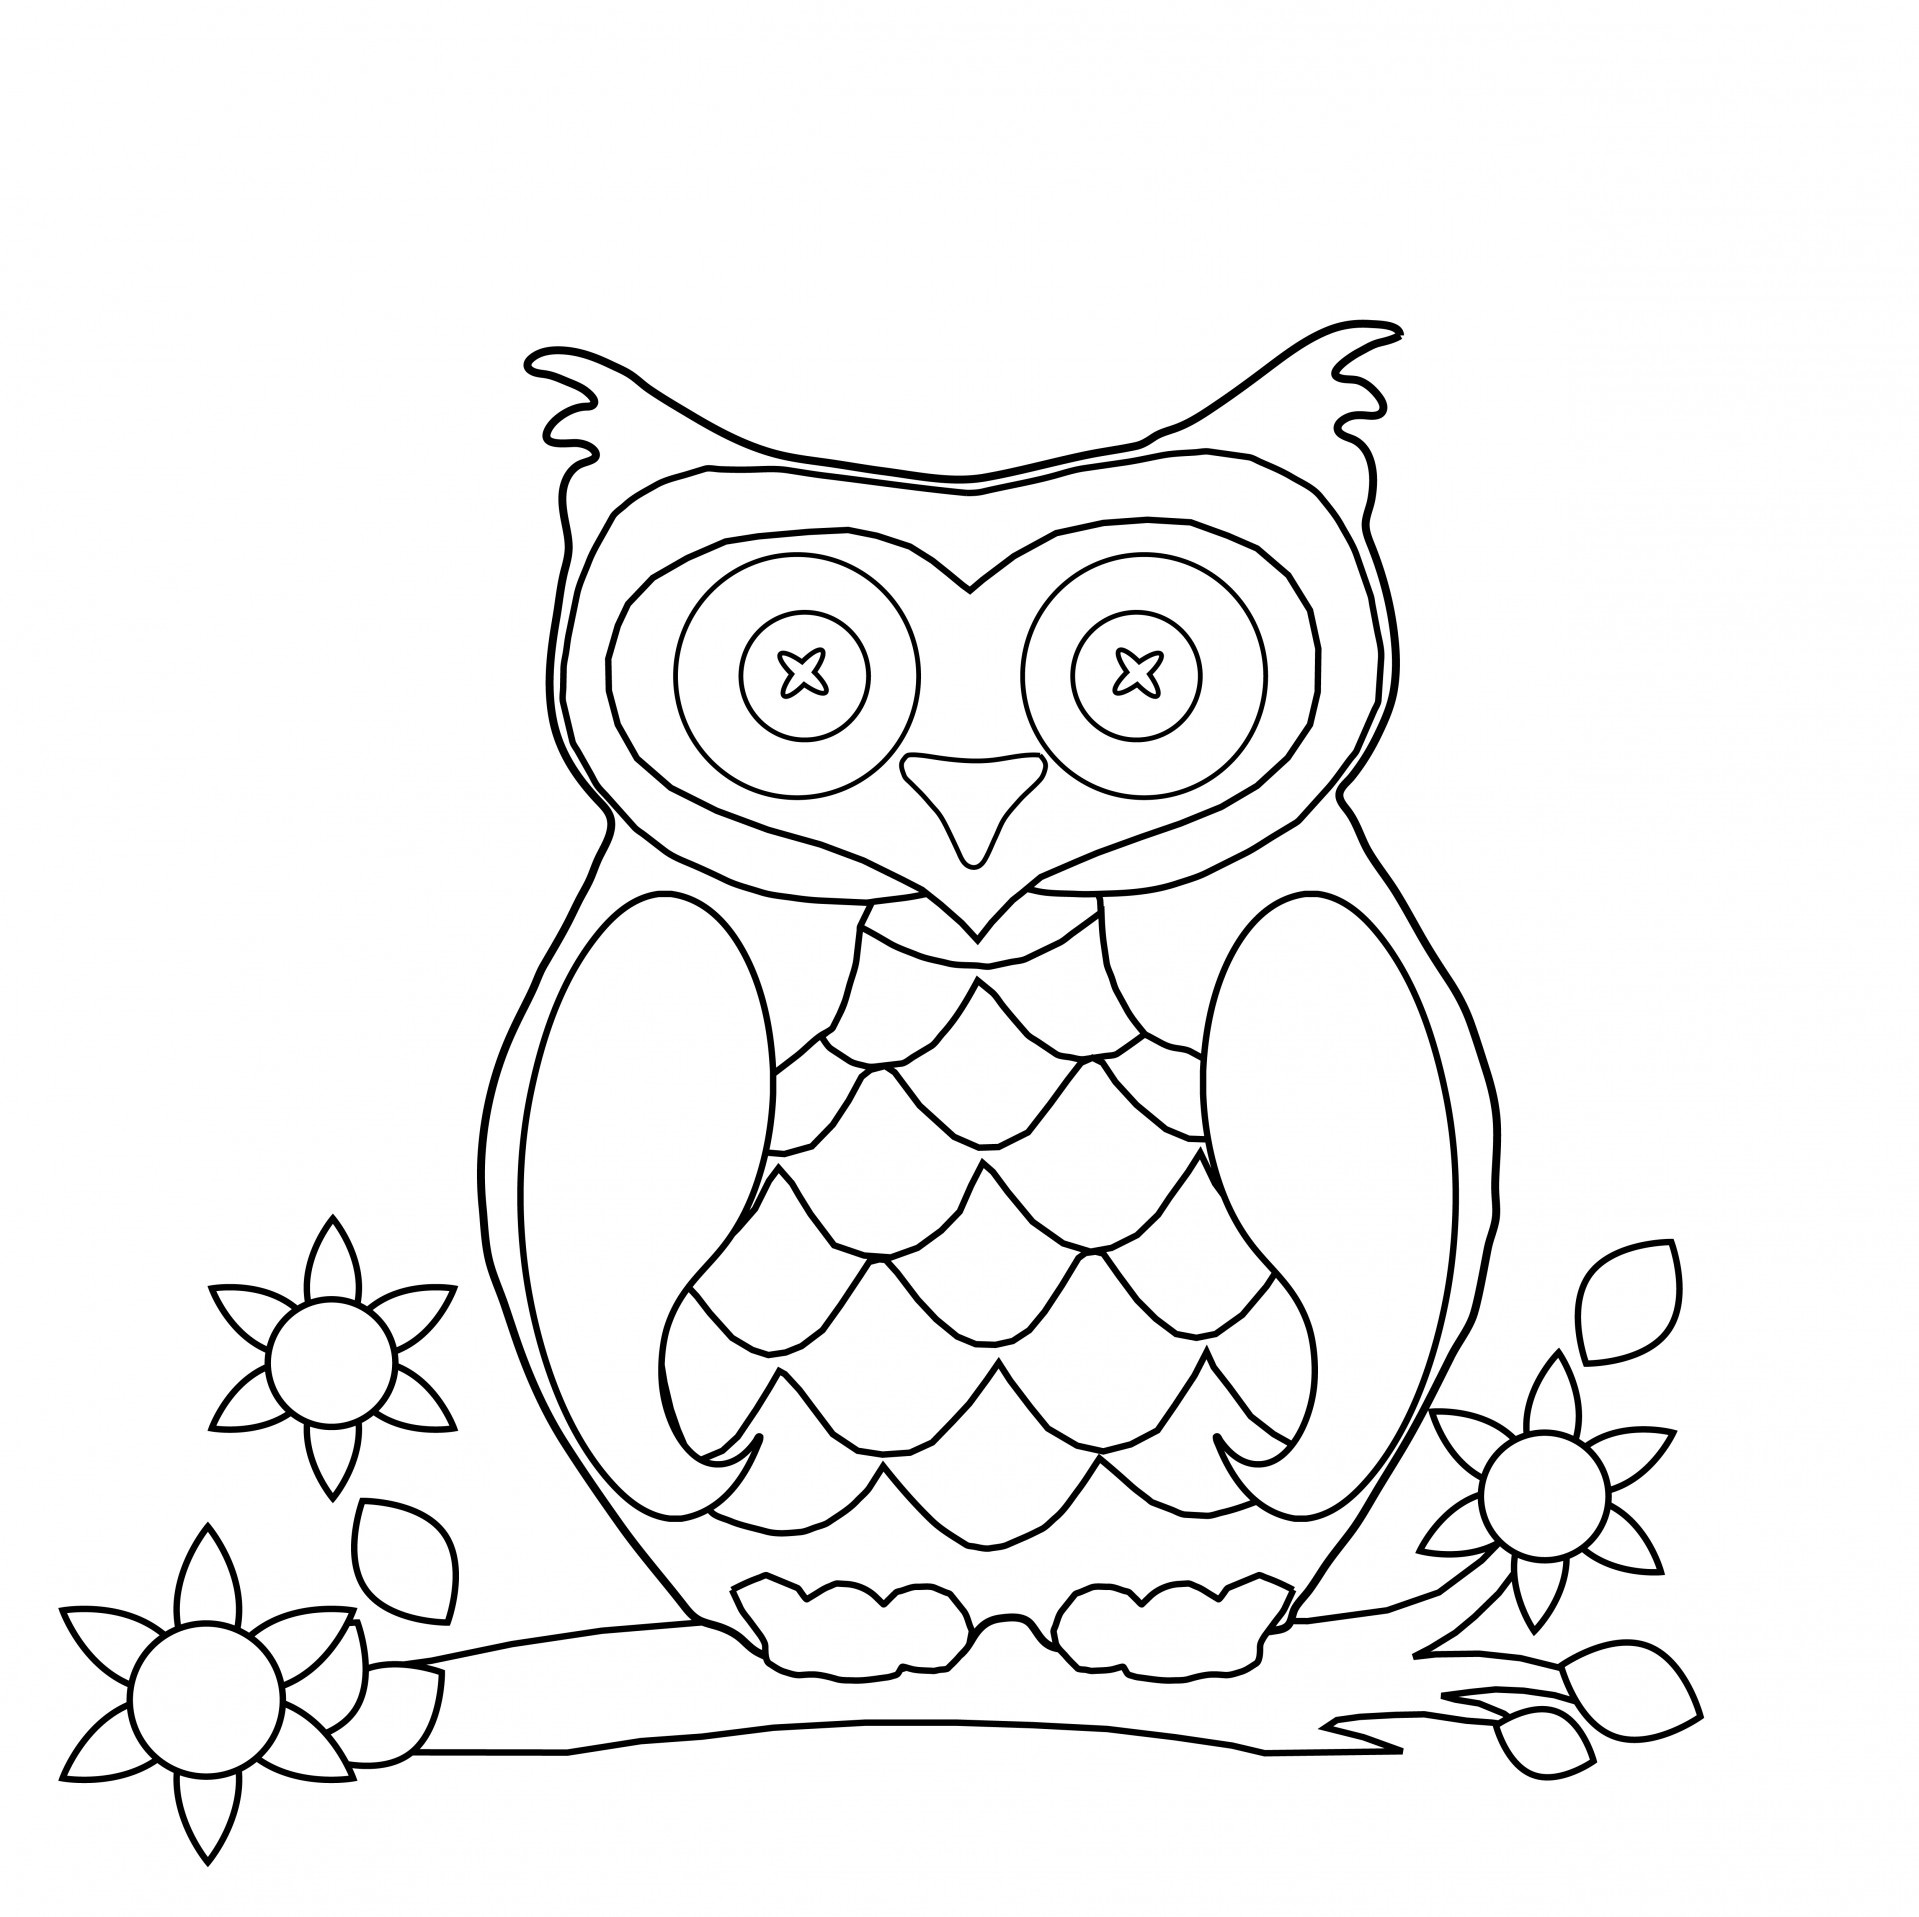 coloring images to print zebra coloring pages free printable kids coloring pages coloring images to print